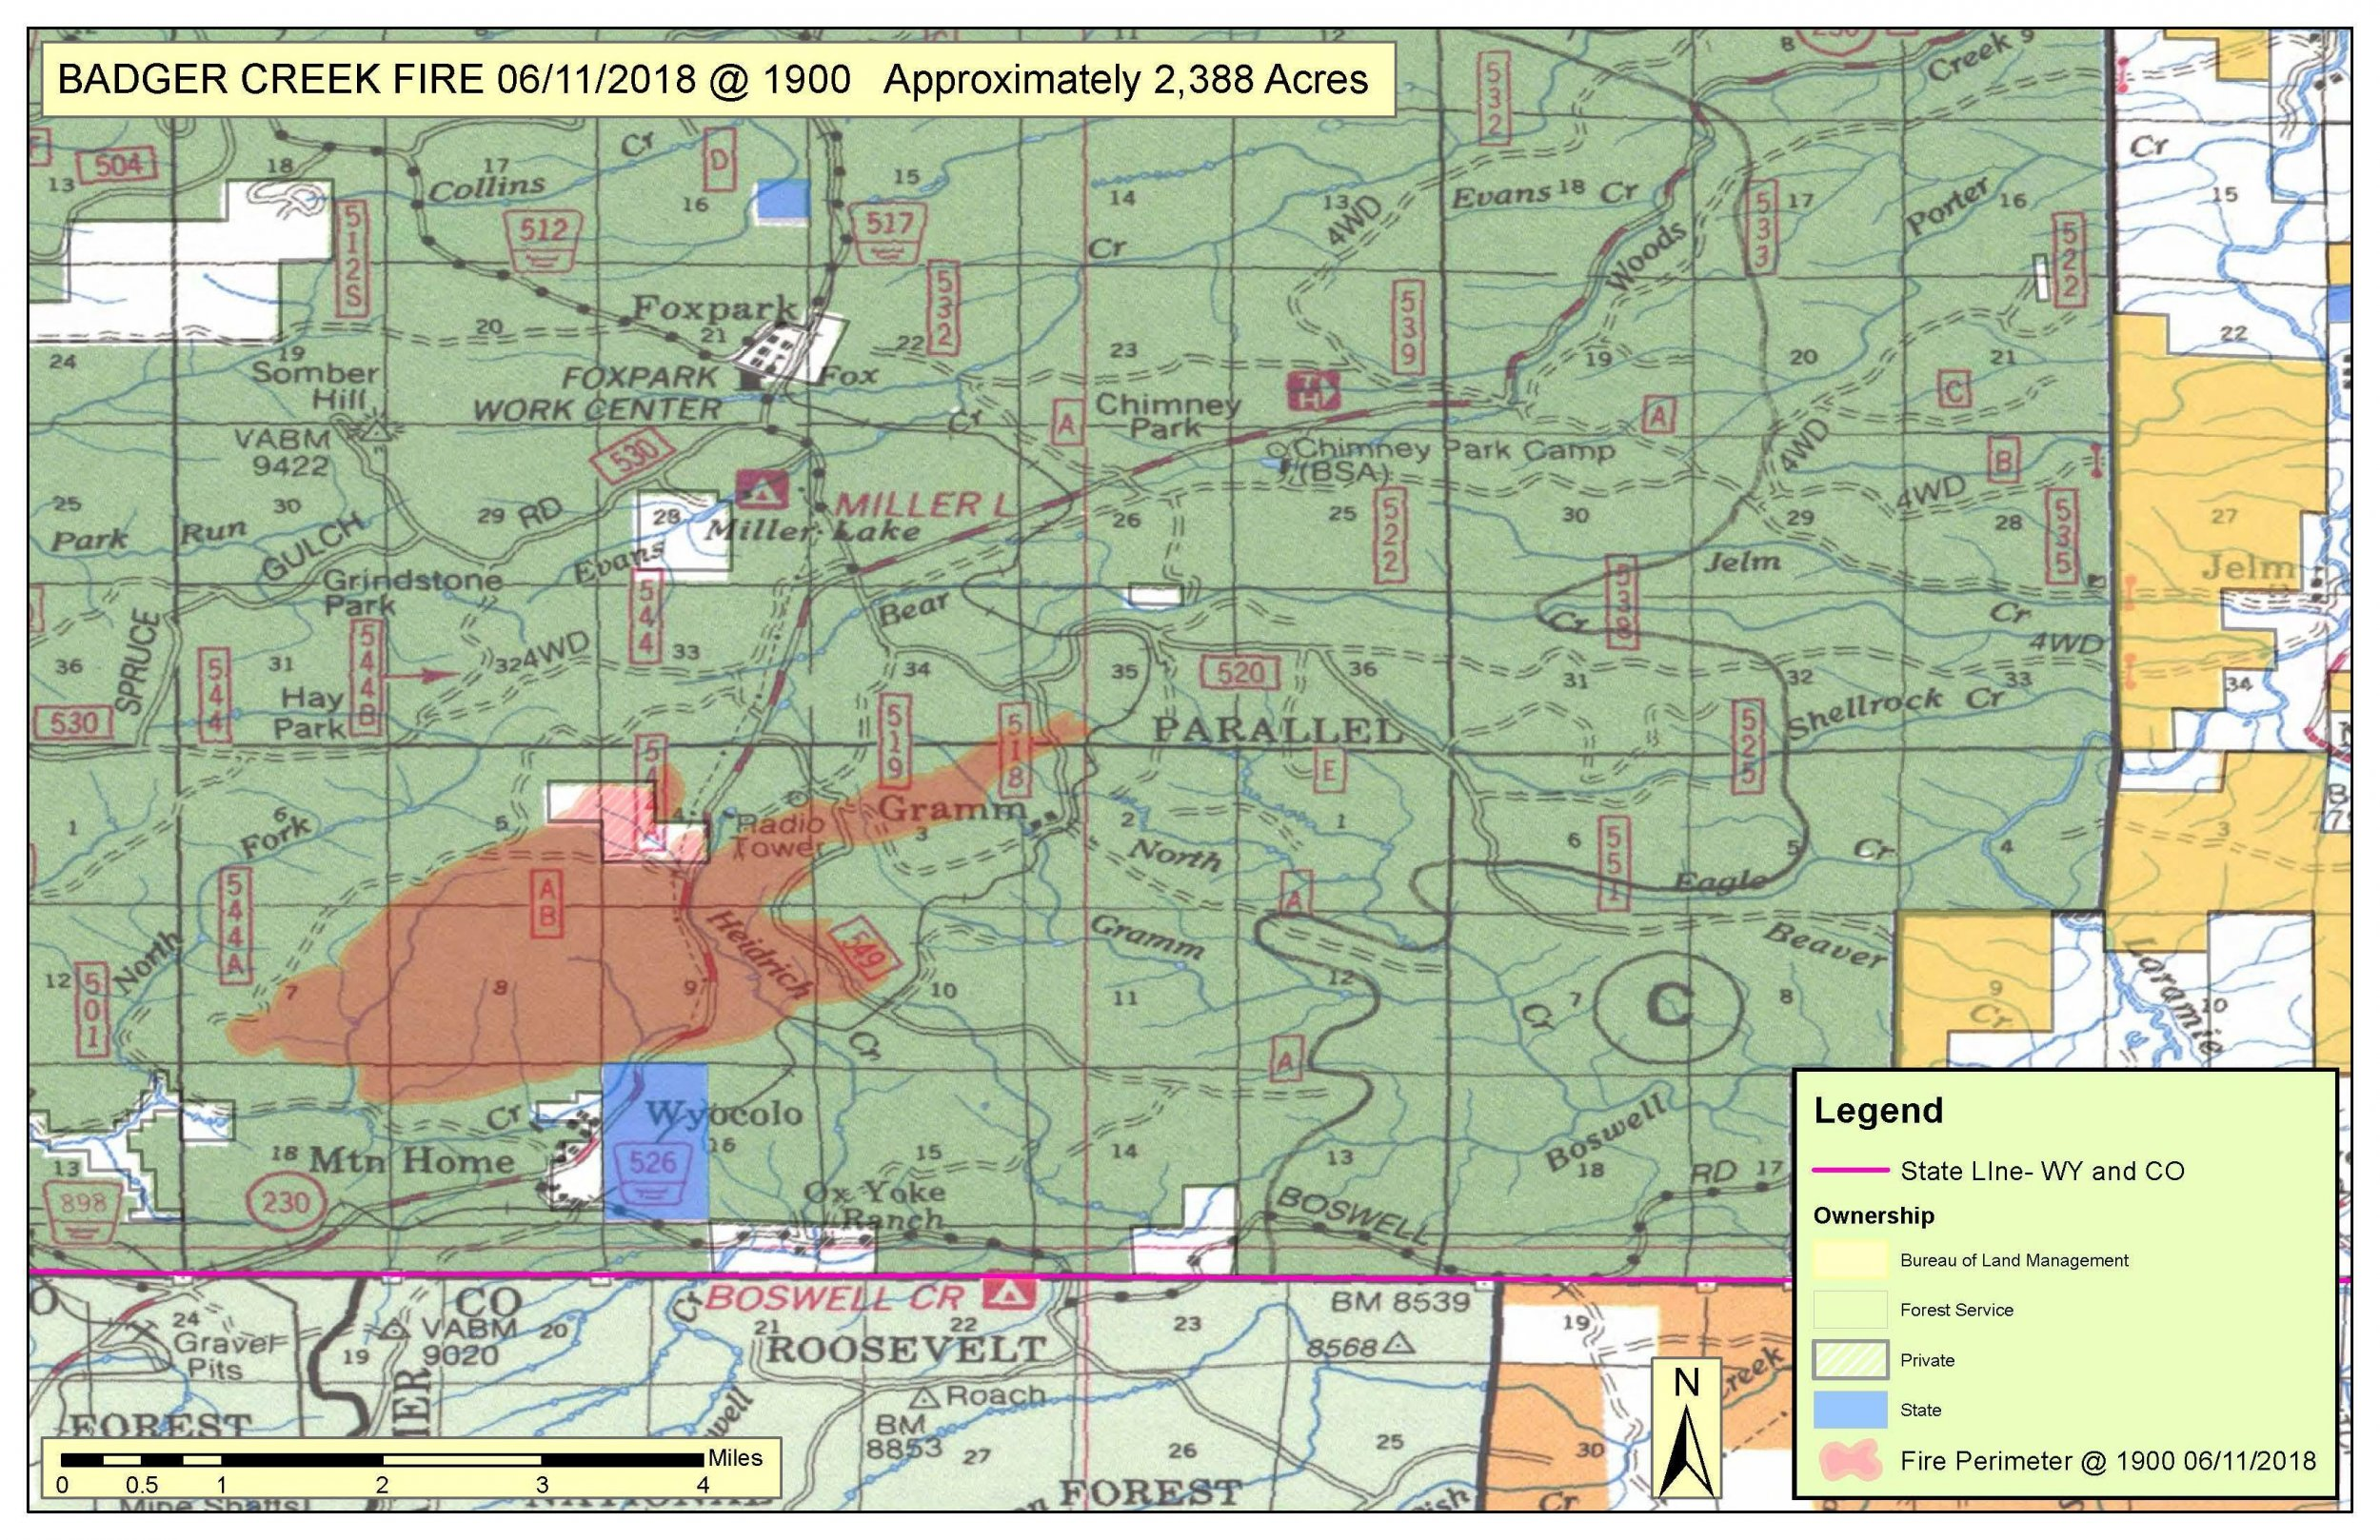 Wyoming Badger Creek Fire: Pre Evacuations and Evacuations Ordered